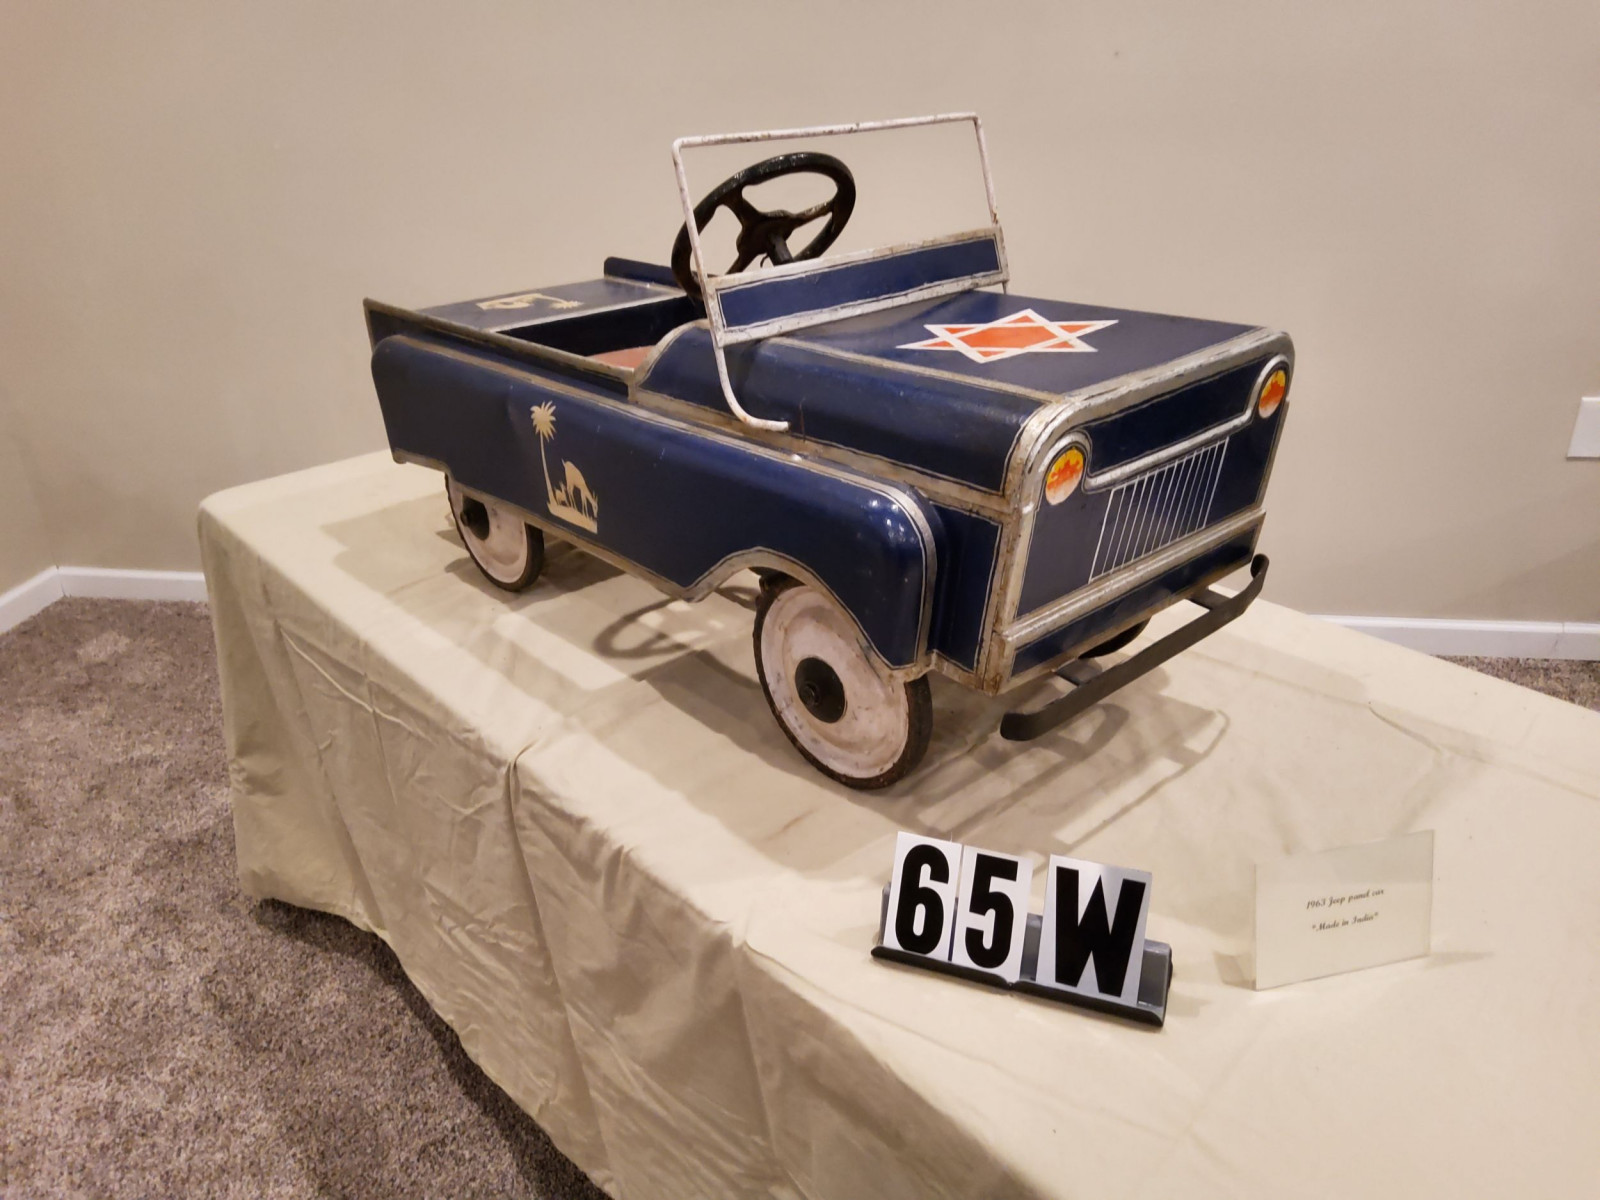 1963 Jeep Pedal Car - Image 2